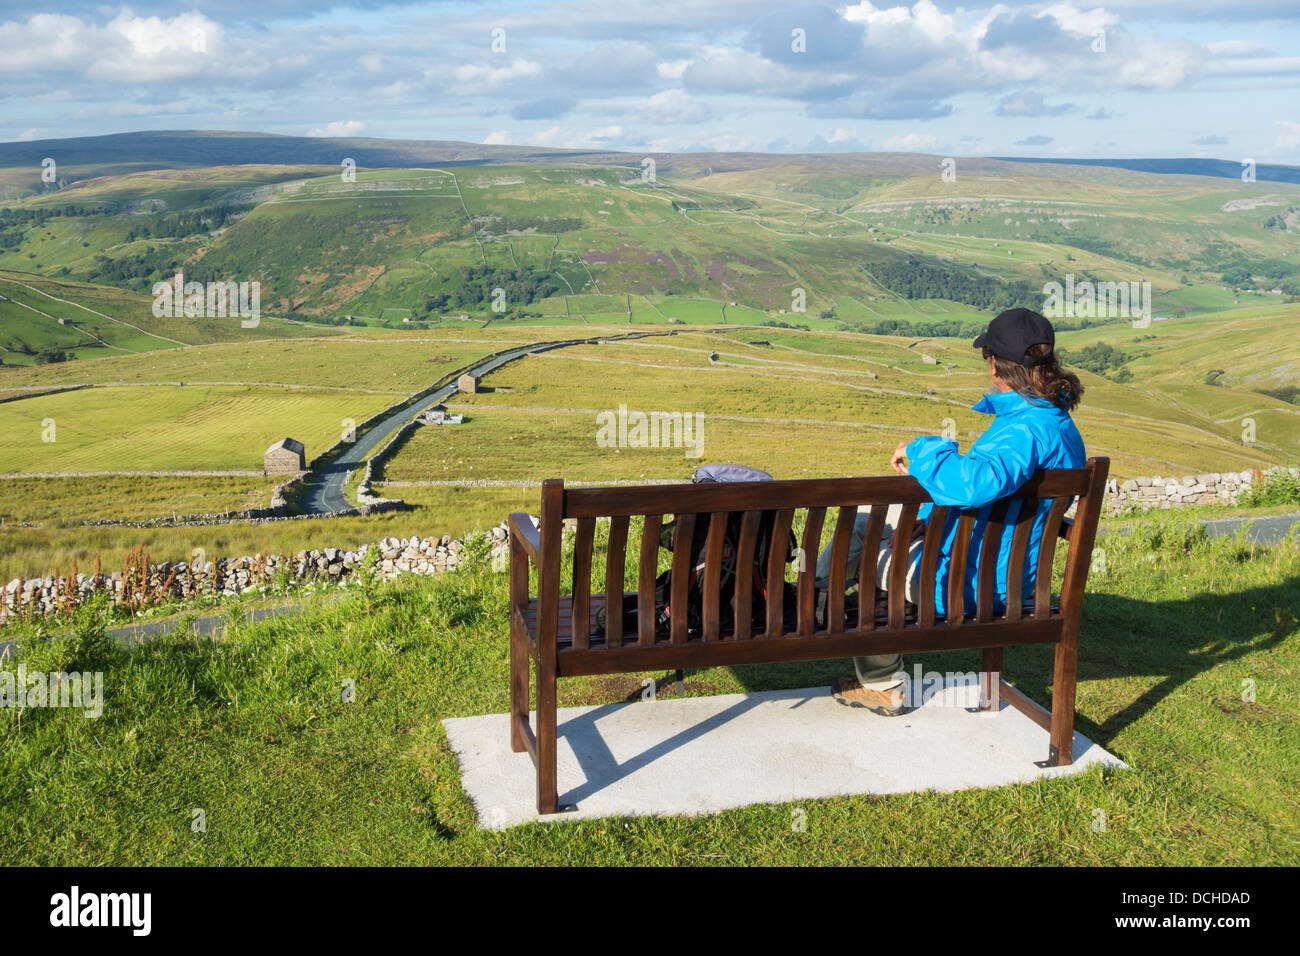 Female hiker on seat overlooking Buttertubs pass in The Yorkshire Dales National Park. Yorkshire, England, UK - Stock Image